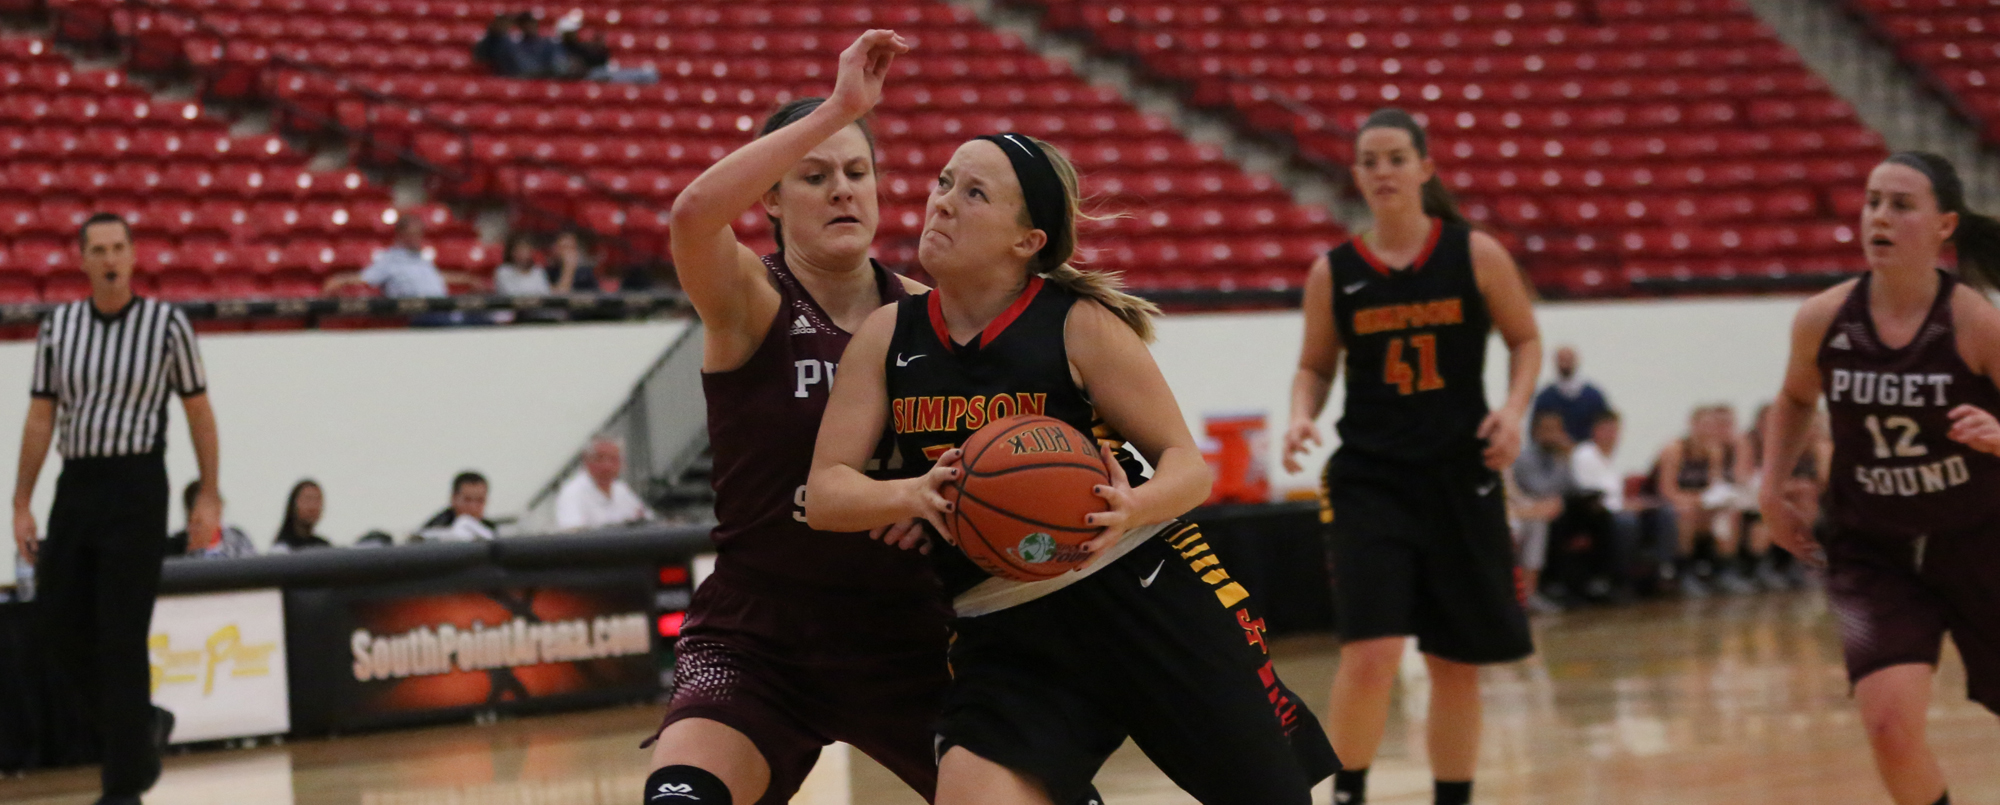 Megan Lankford scored 10 points in the Storm's 77-69 overtime loss to No. 23 Puget Sound on Thursday, Dec. 29.